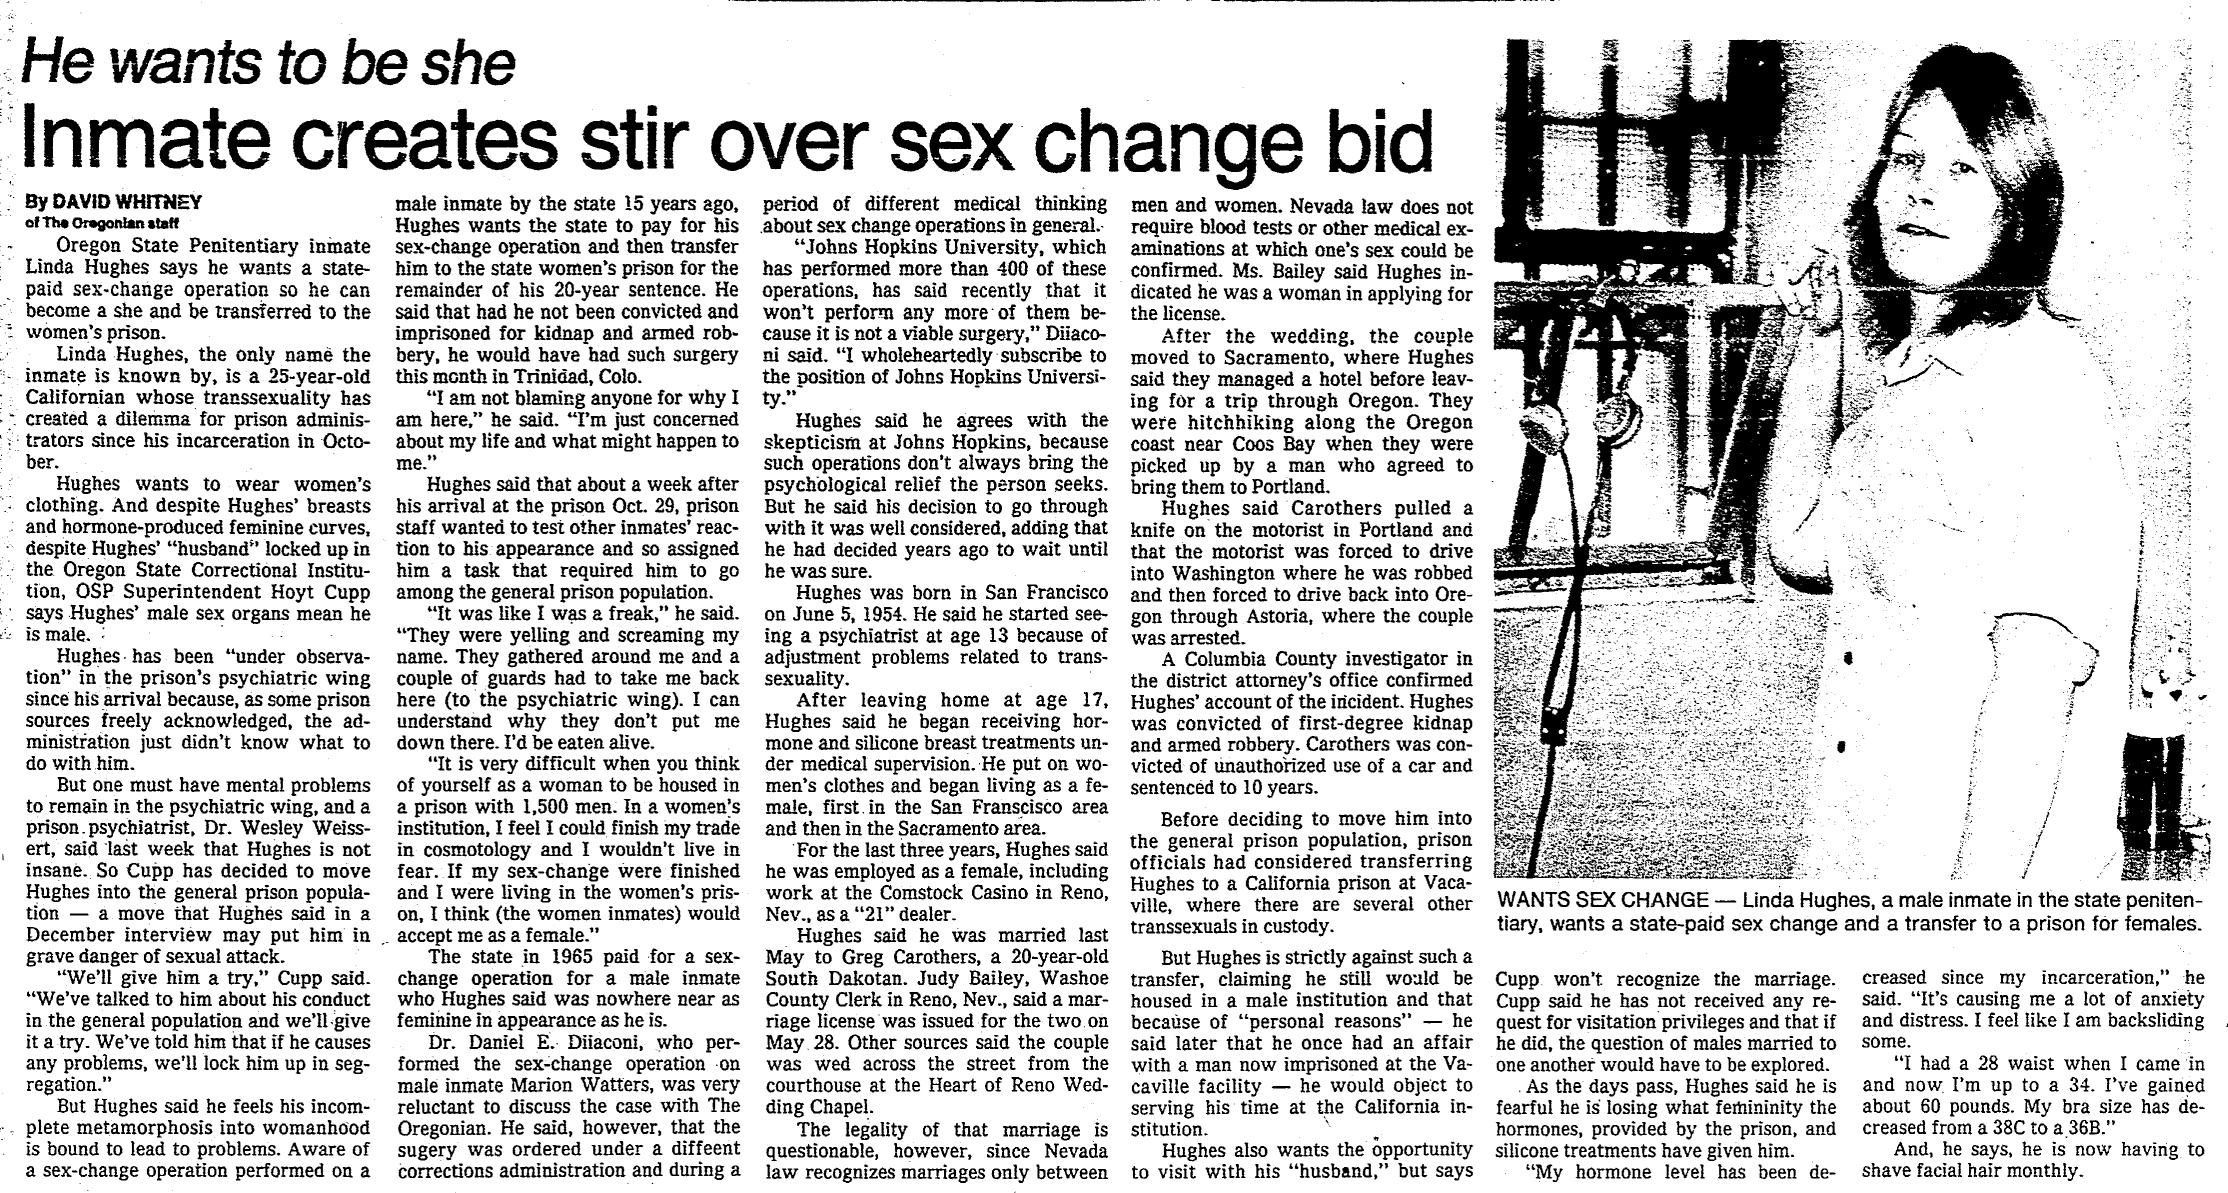 Inmate wants a sex change